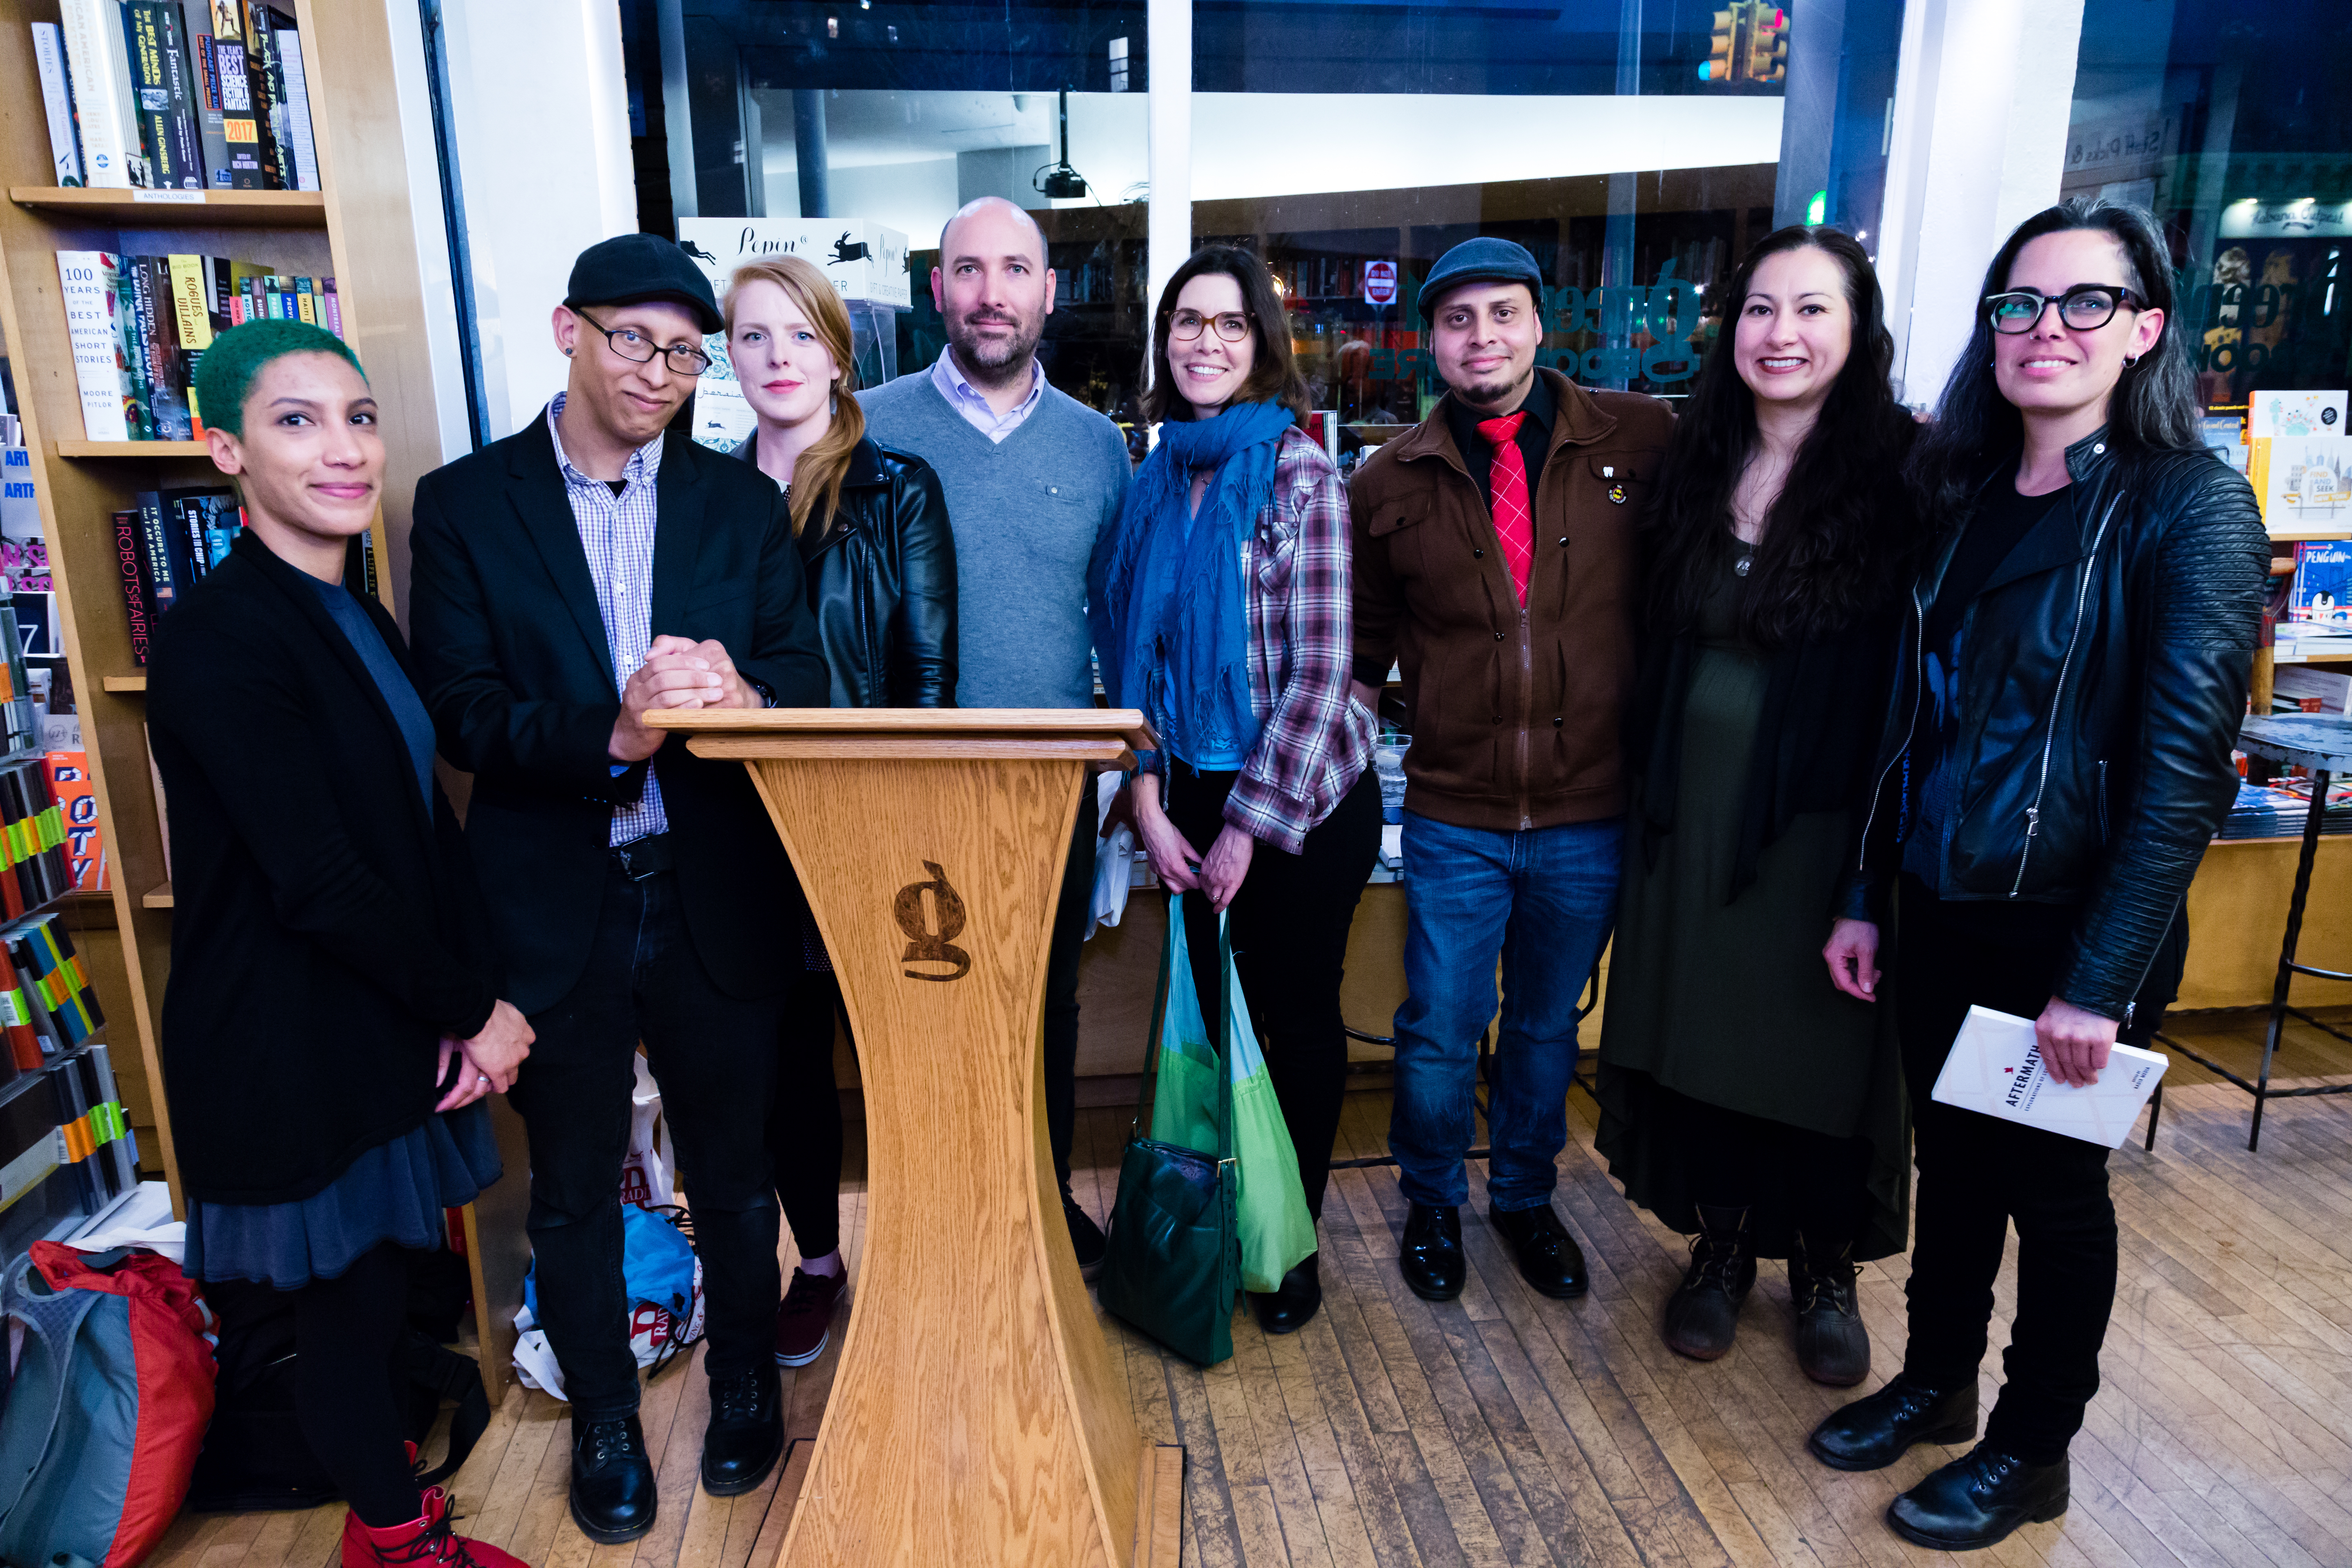 AFTERMATH Launch - Radix workers and contributors